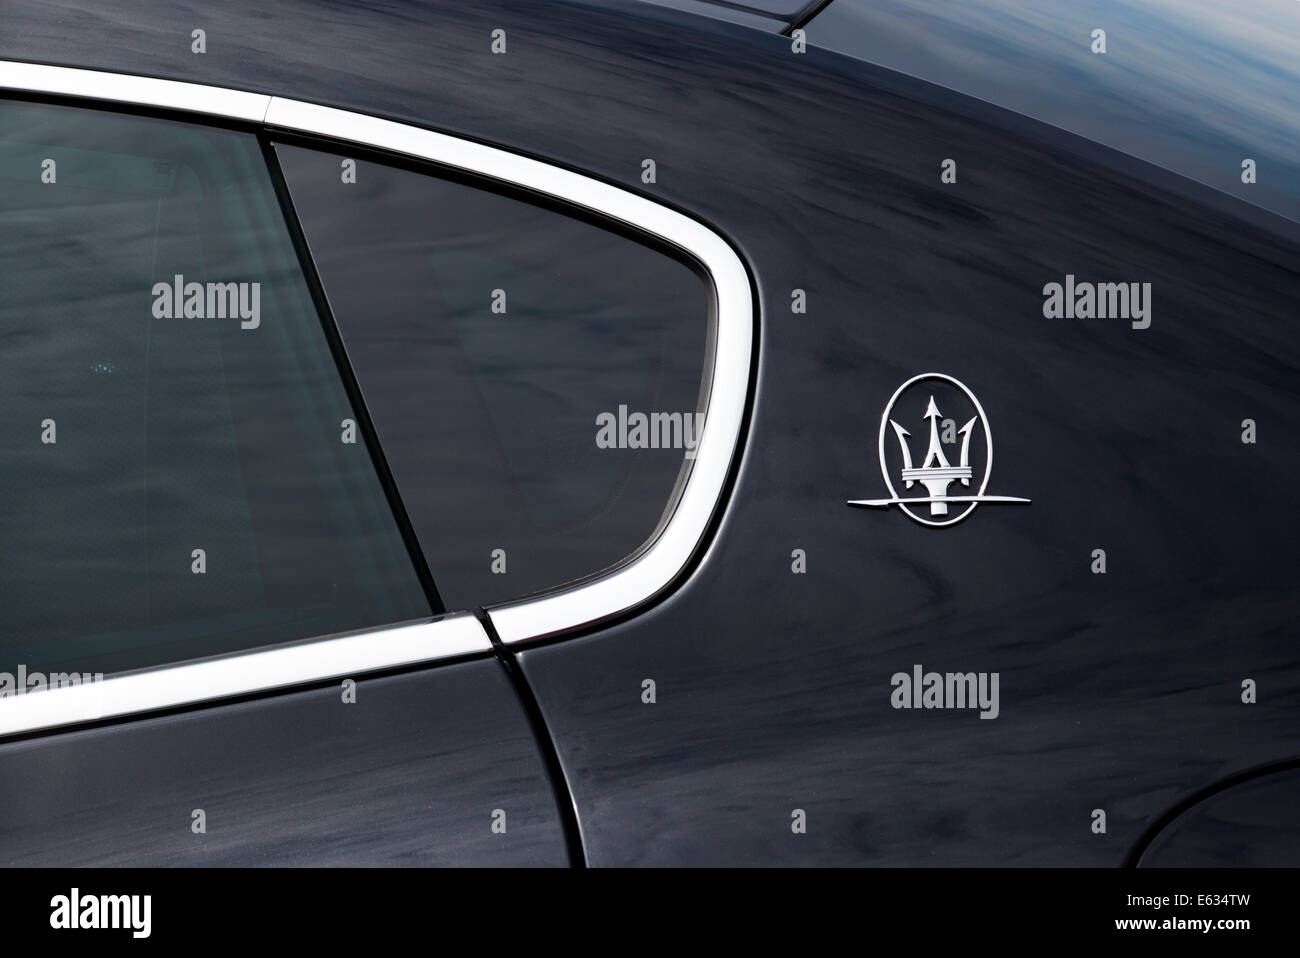 Trident Car Logo >> Maserati Quattroporte Trident Badge Logo On Side Of The Car Stock